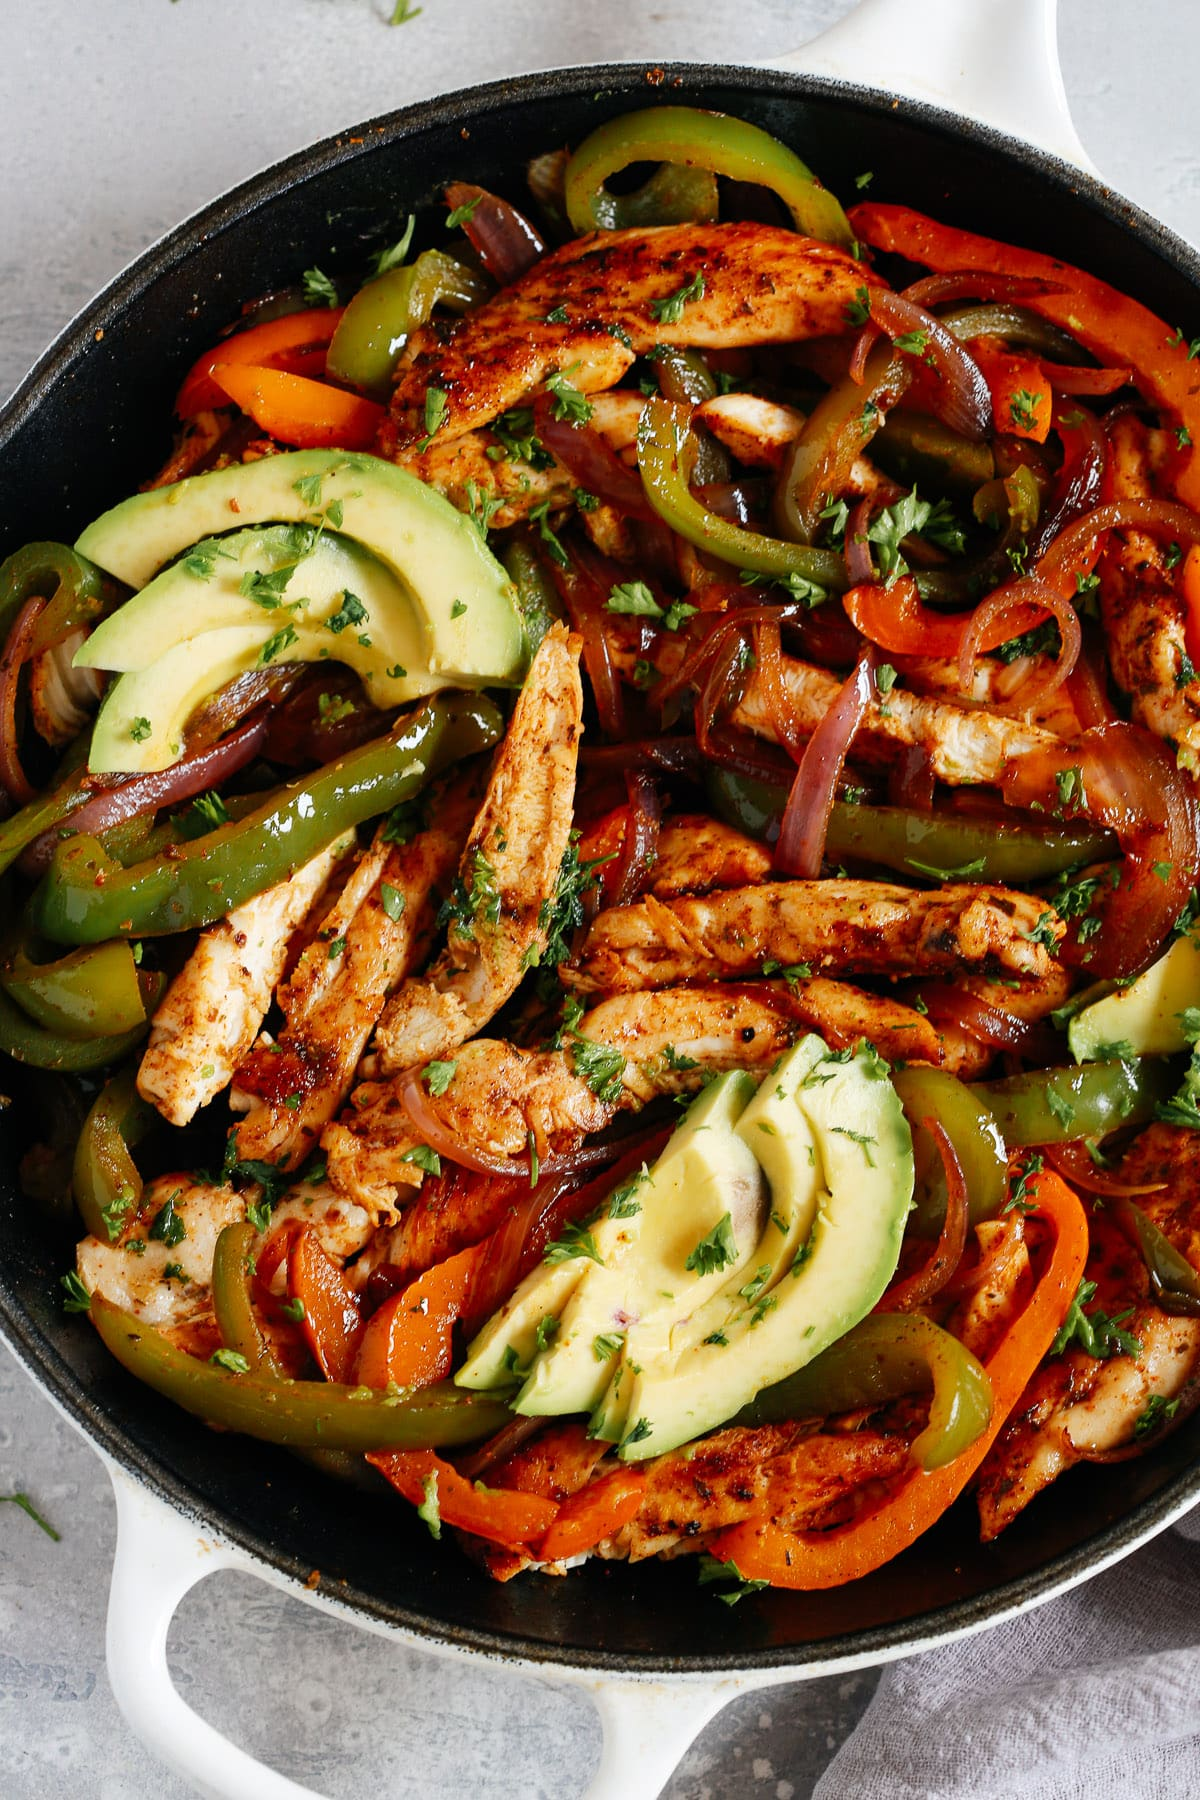 A white skillet with chicken fajitas, bell peppers, and avocado slices.